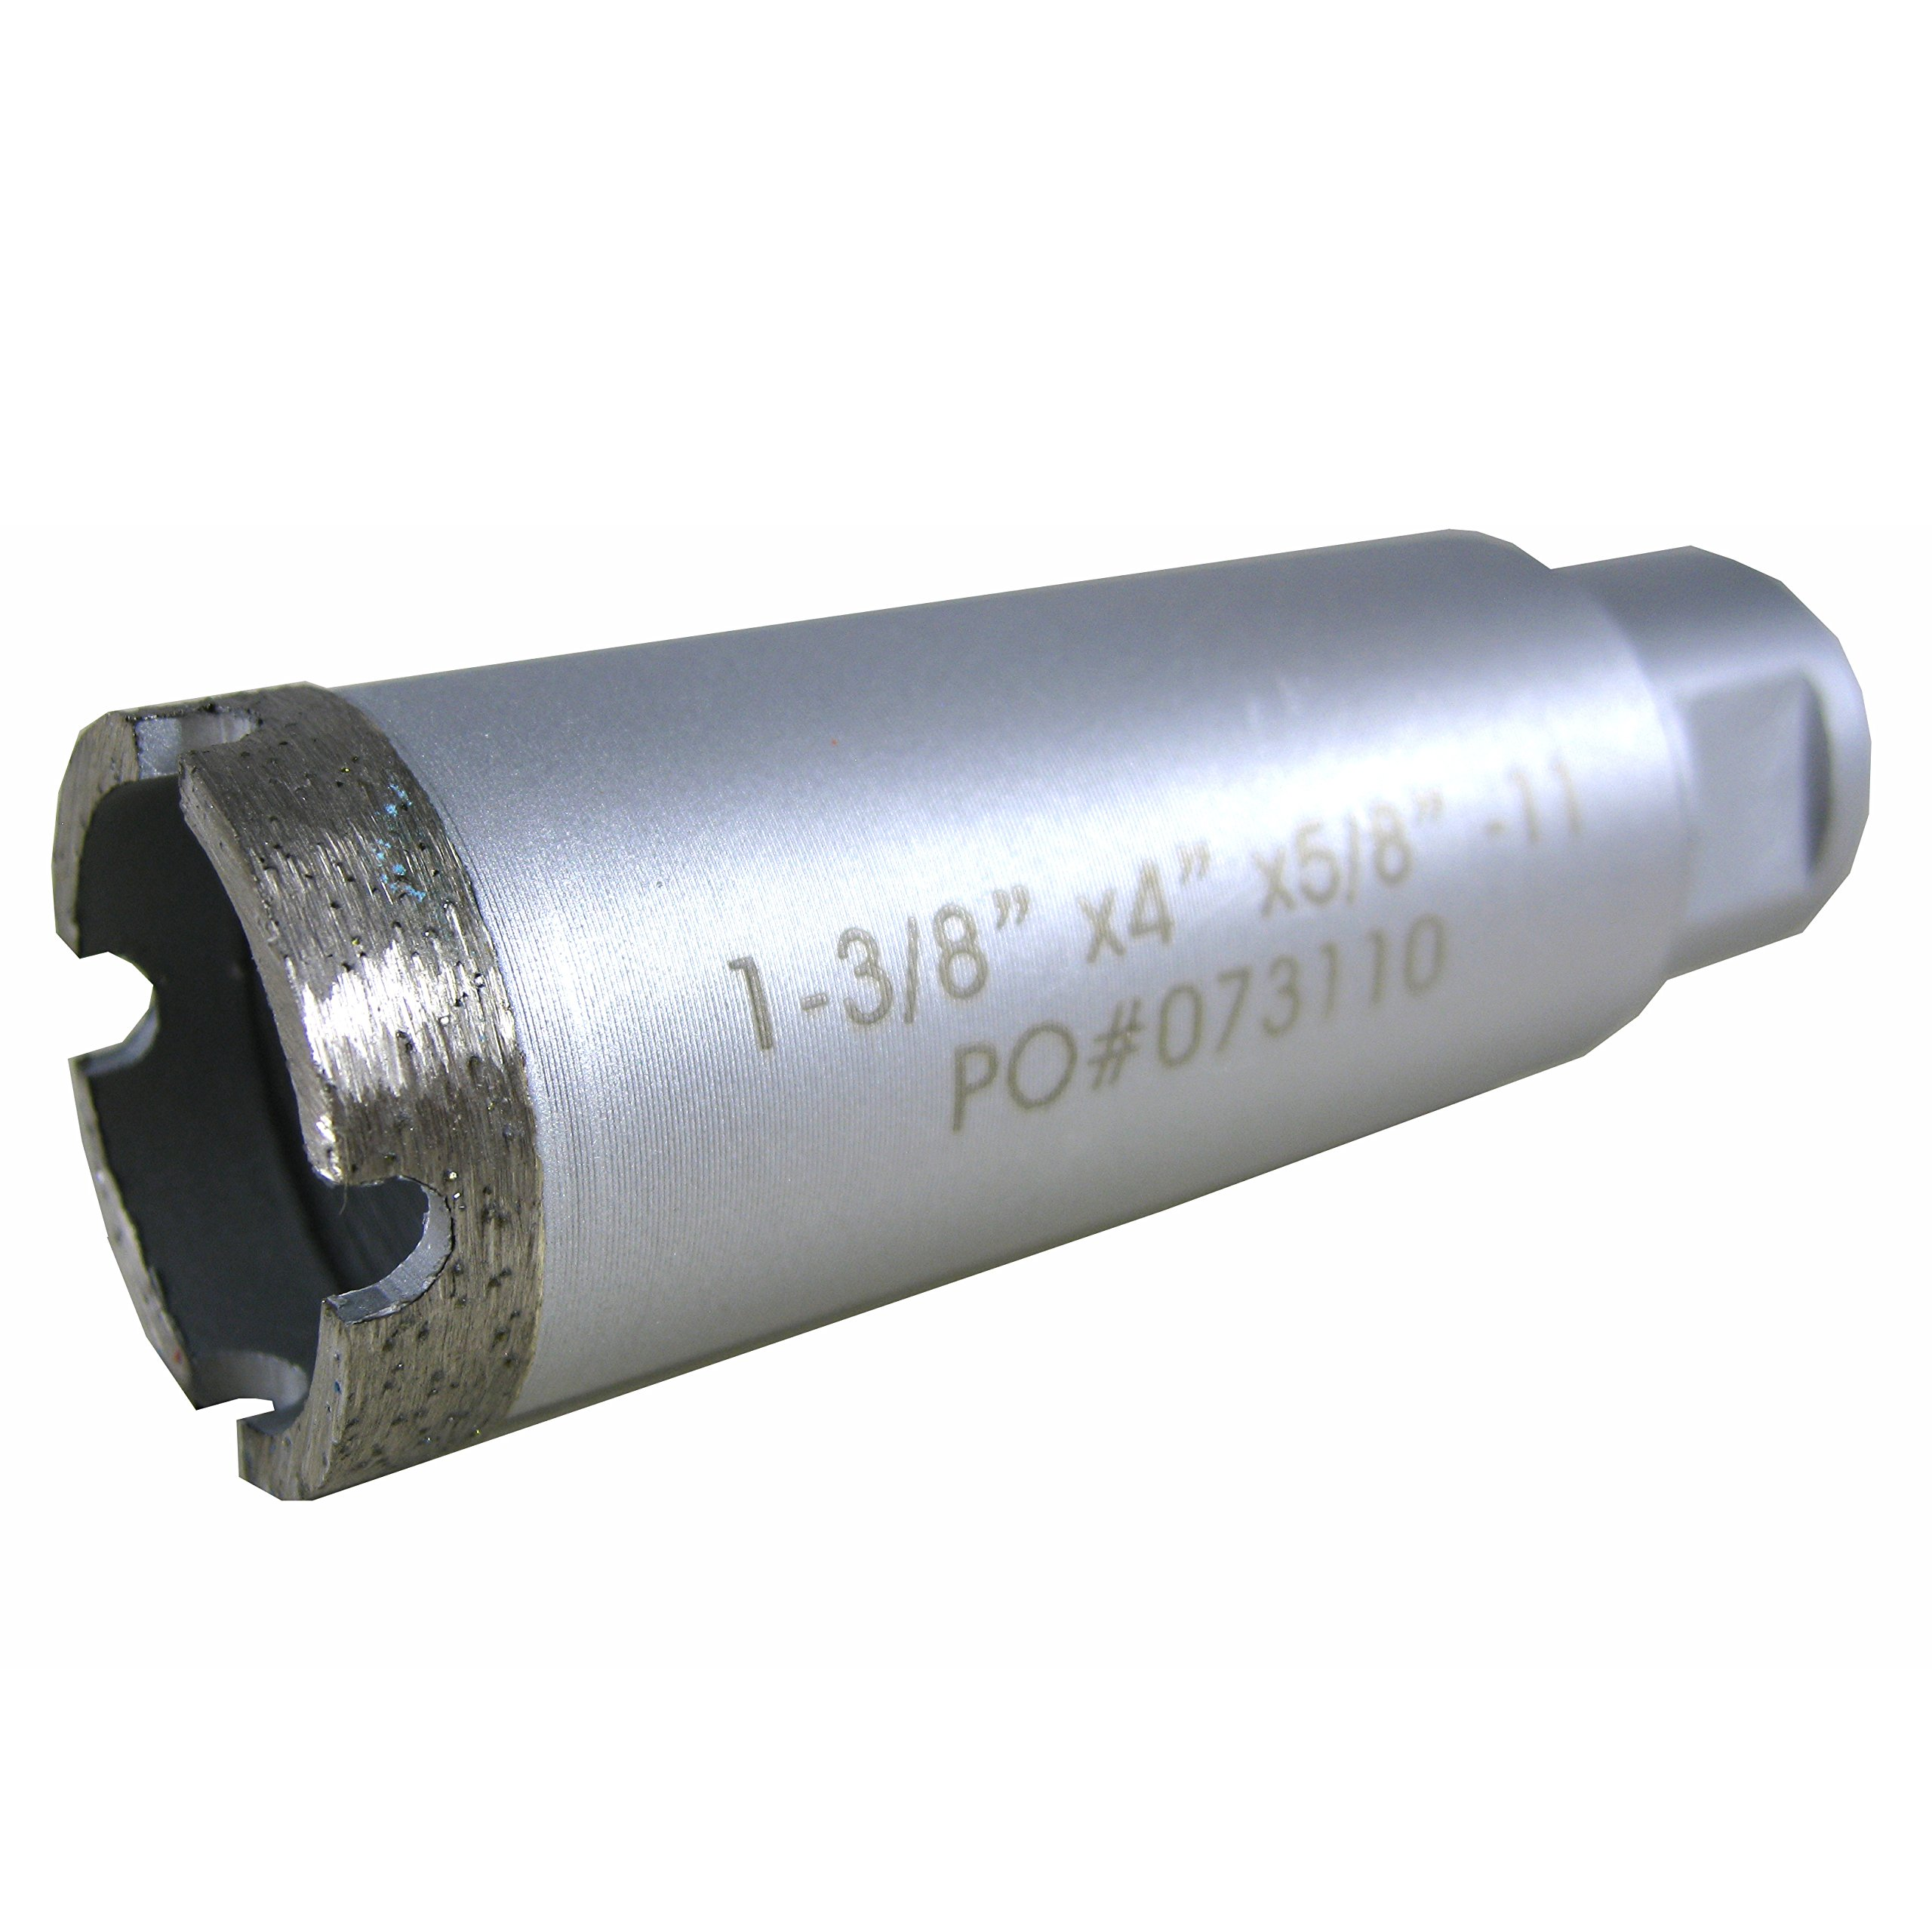 Wet Diamond Core Bit for Stone Drilling by Archer USA (1.375 in.) by Archer USA / Dexpan USA